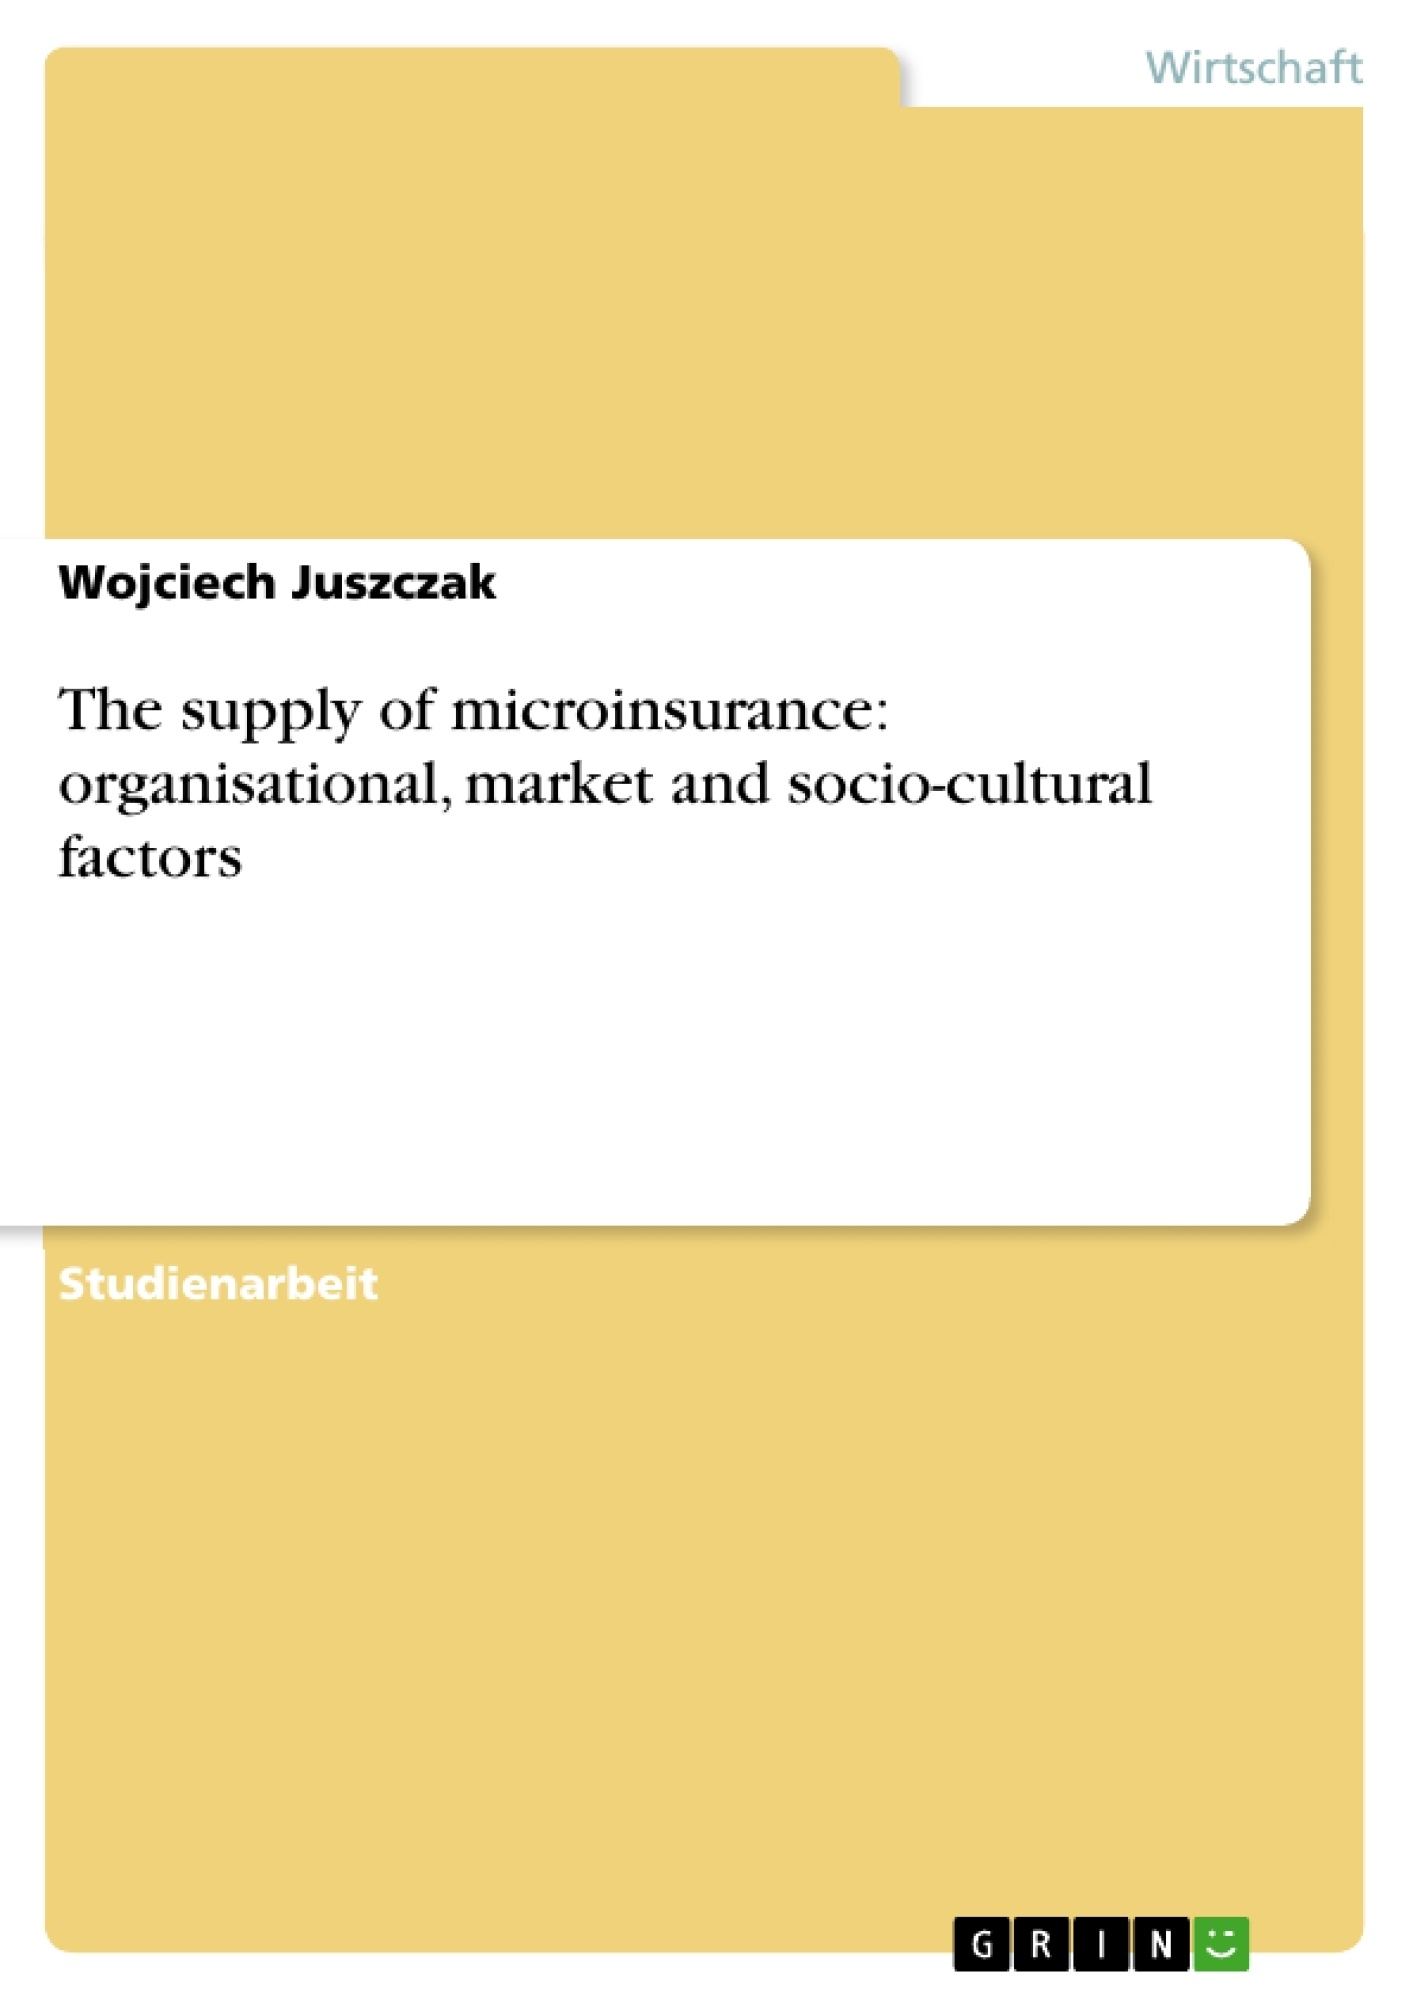 Titel: The supply of microinsurance: organisational, market and socio-cultural factors